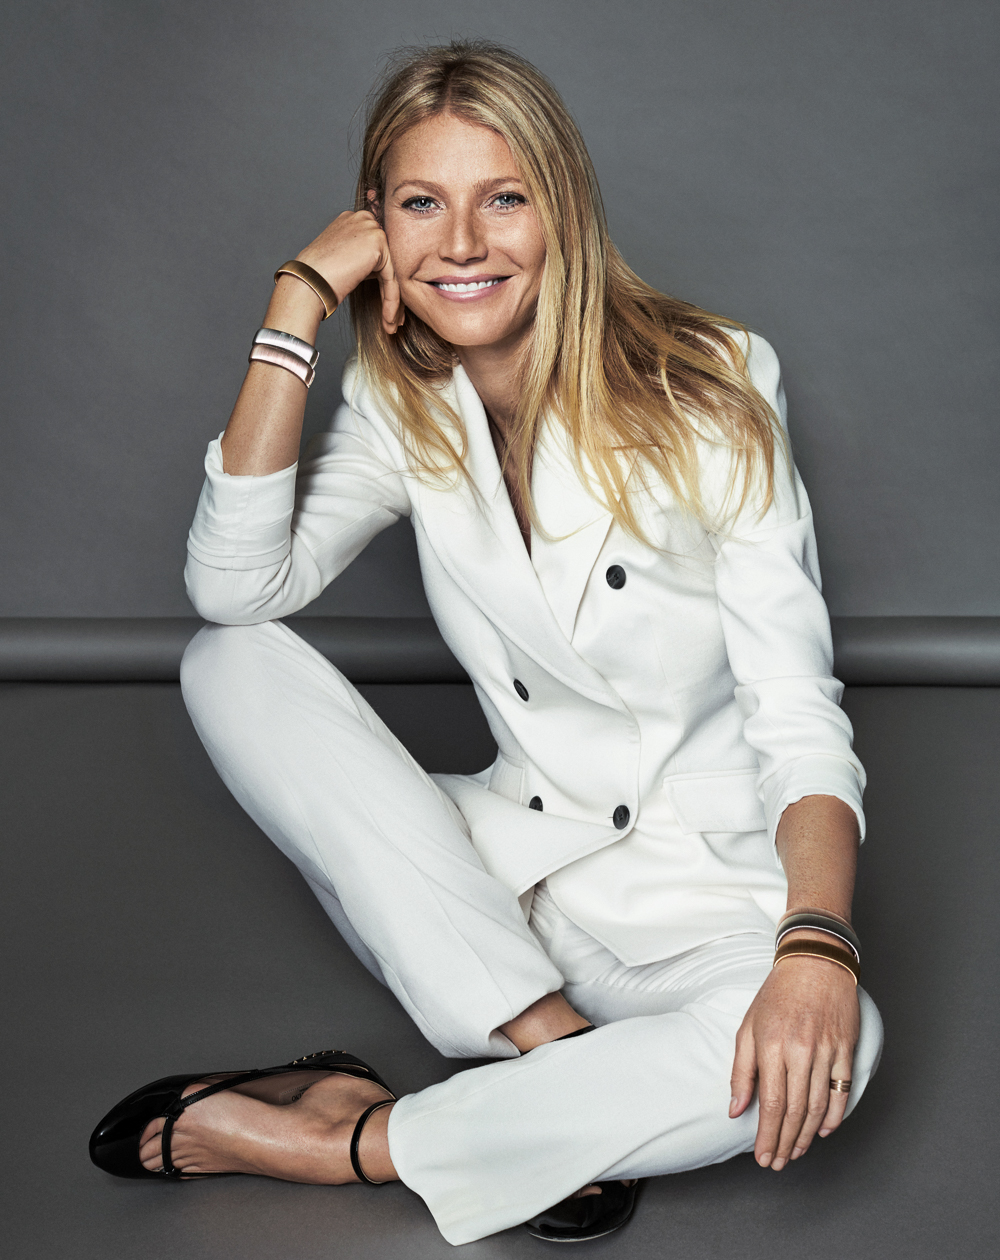 Gwyneth Paltrow in Elle Spain